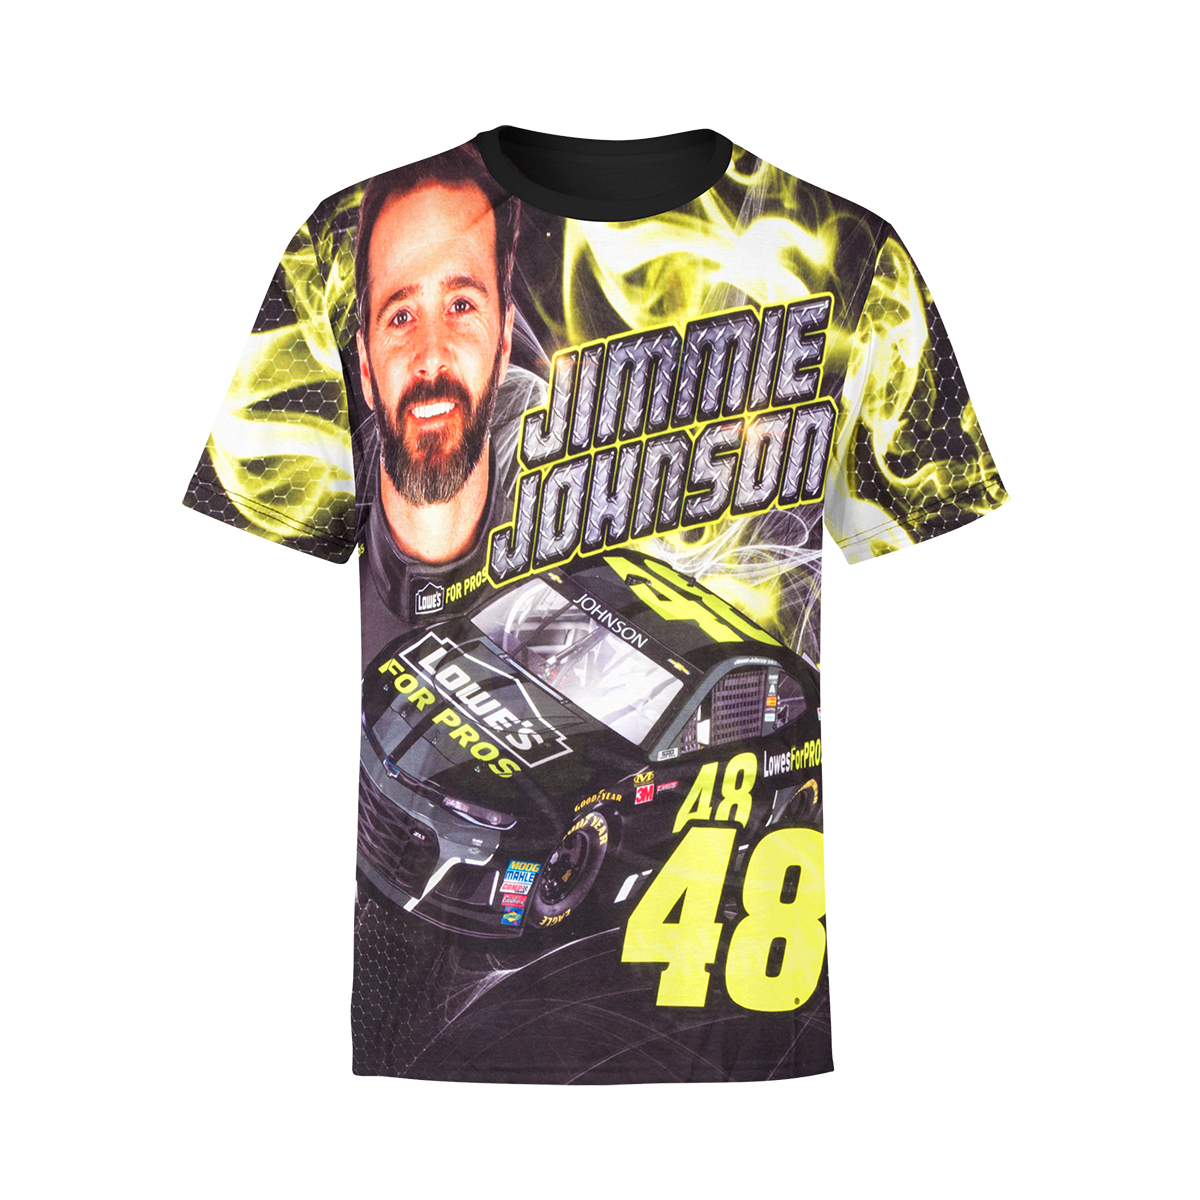 Jimmie Johnson #48 Youth Sublimated Driver T-shirt